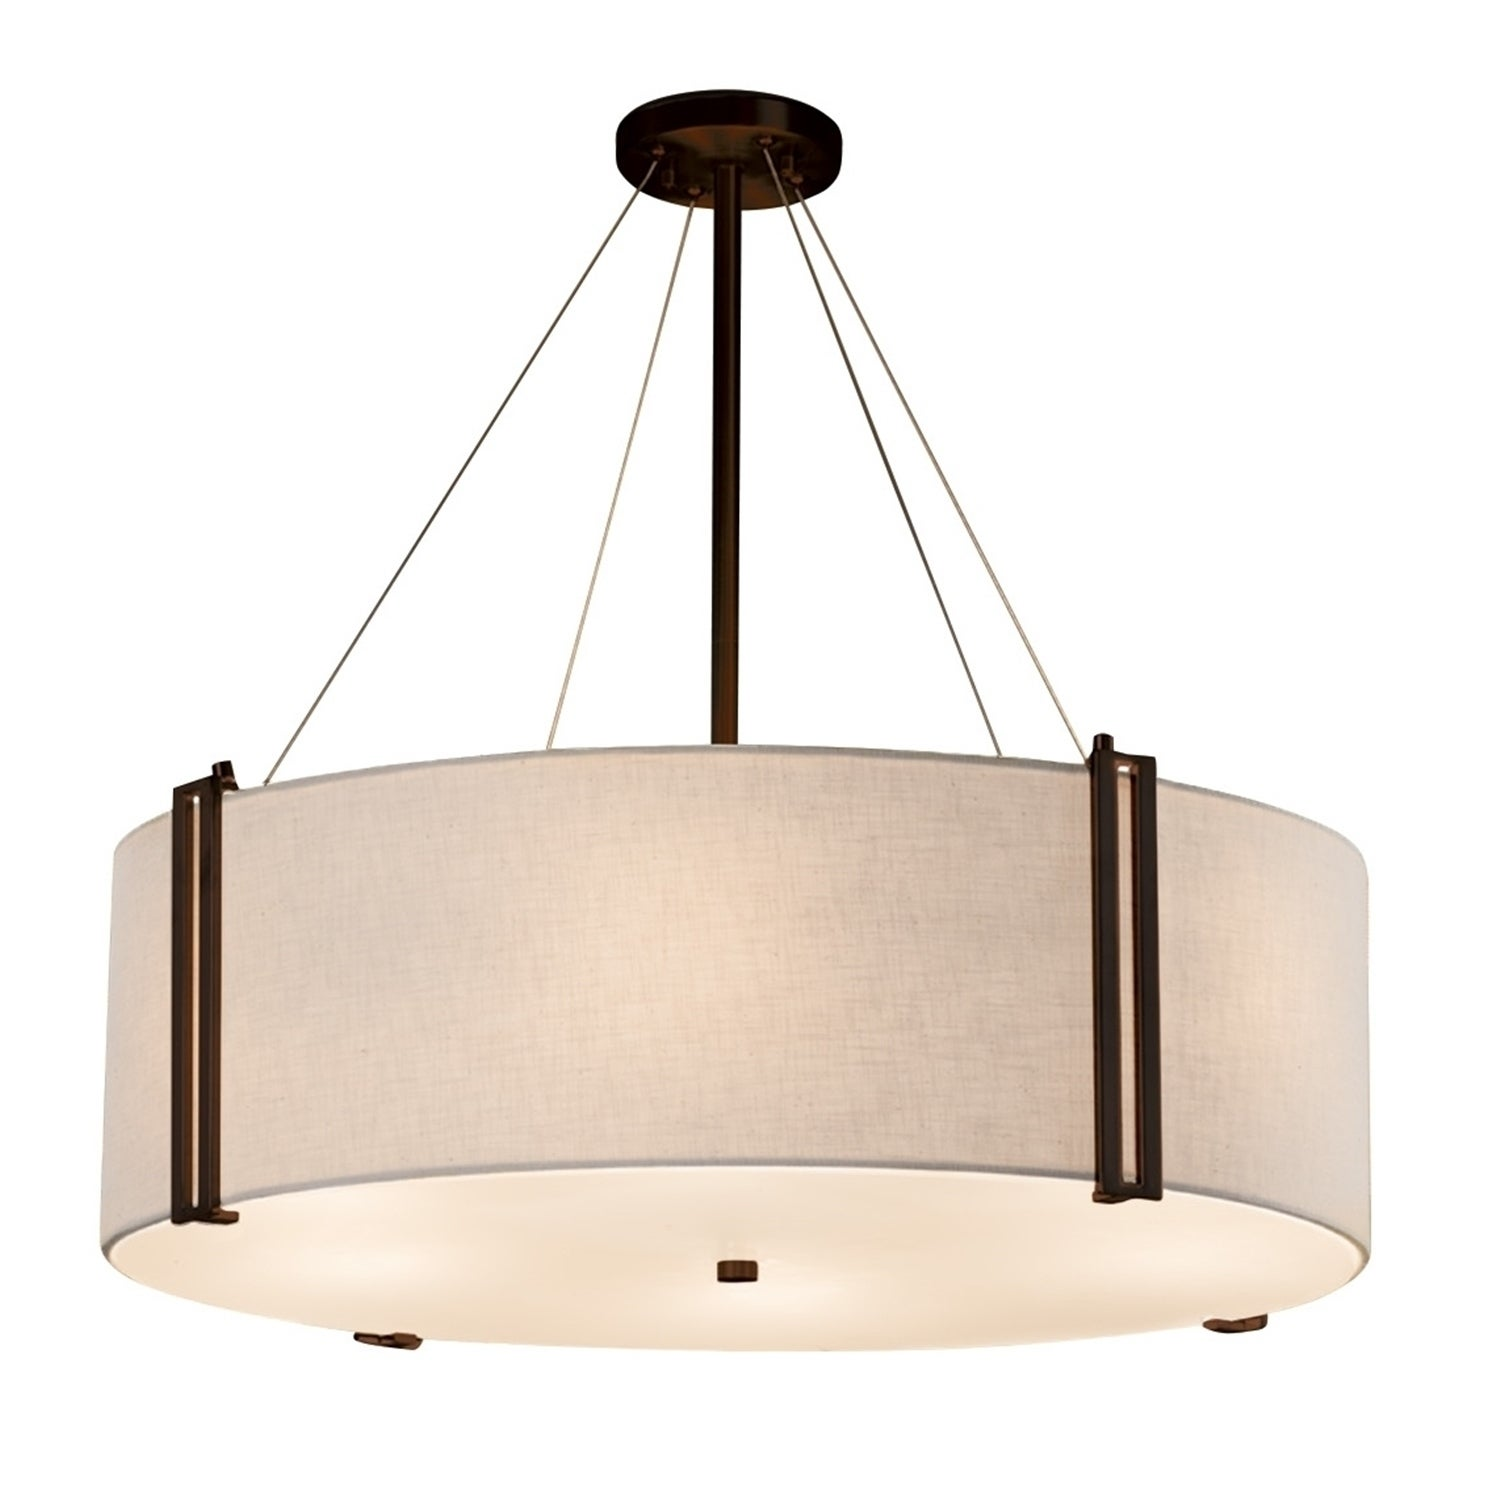 Image of: Shop Black Friday Deals On Justice Design Group Textile Reveal 36 Inch Dark Bronze Drum Pendant White Shade Overstock 19562598